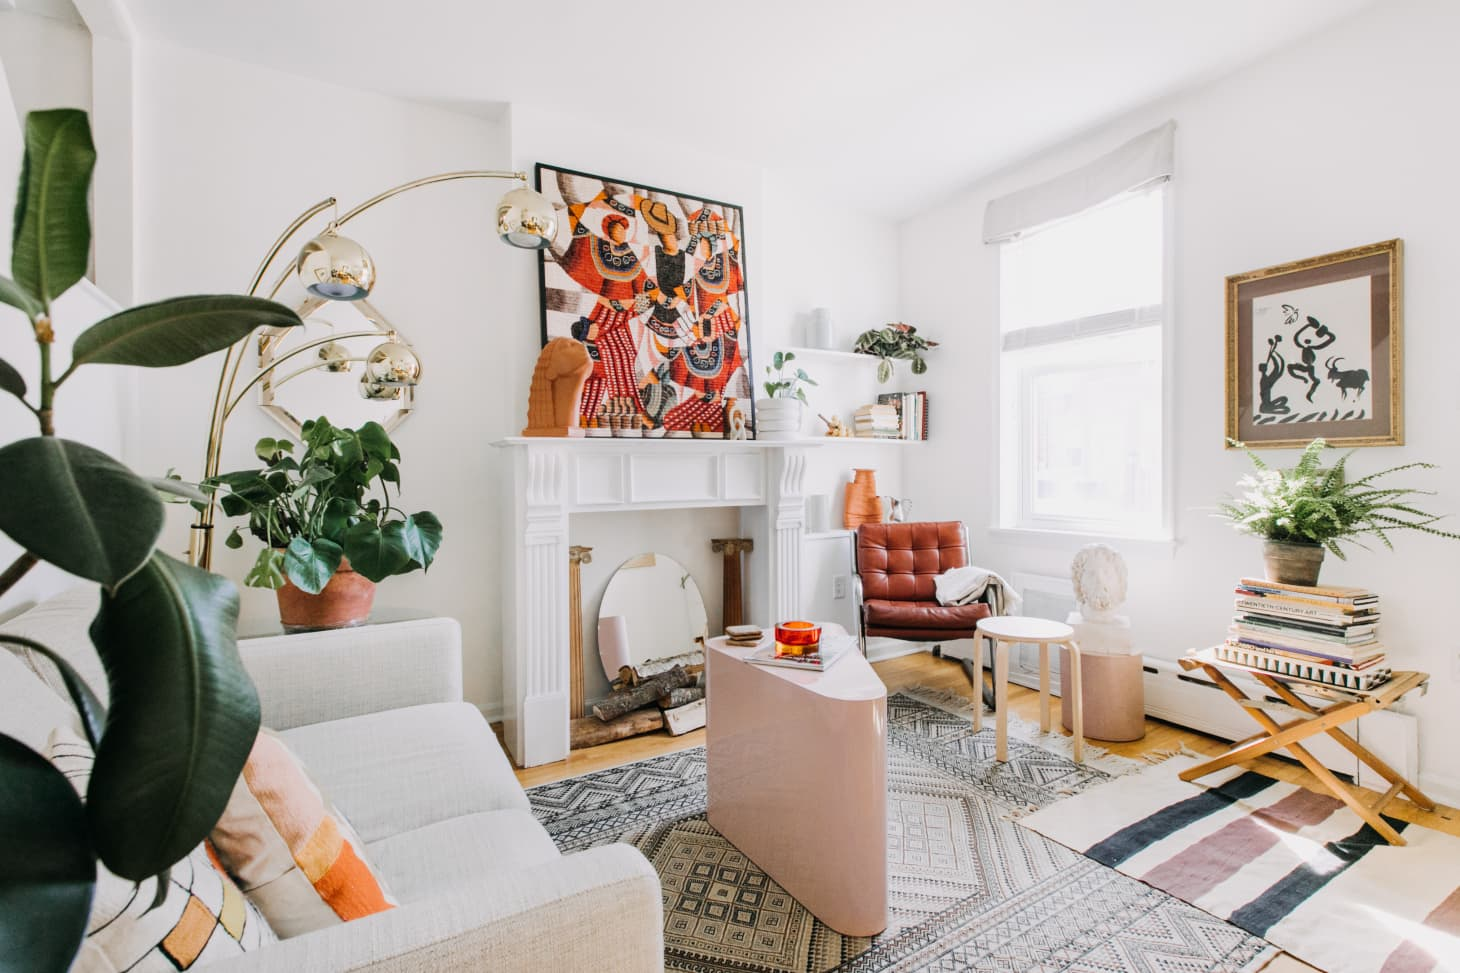 Apartment Therapy - Three Things to Splurge On for Your Living Room, And Two Things You Can Save On